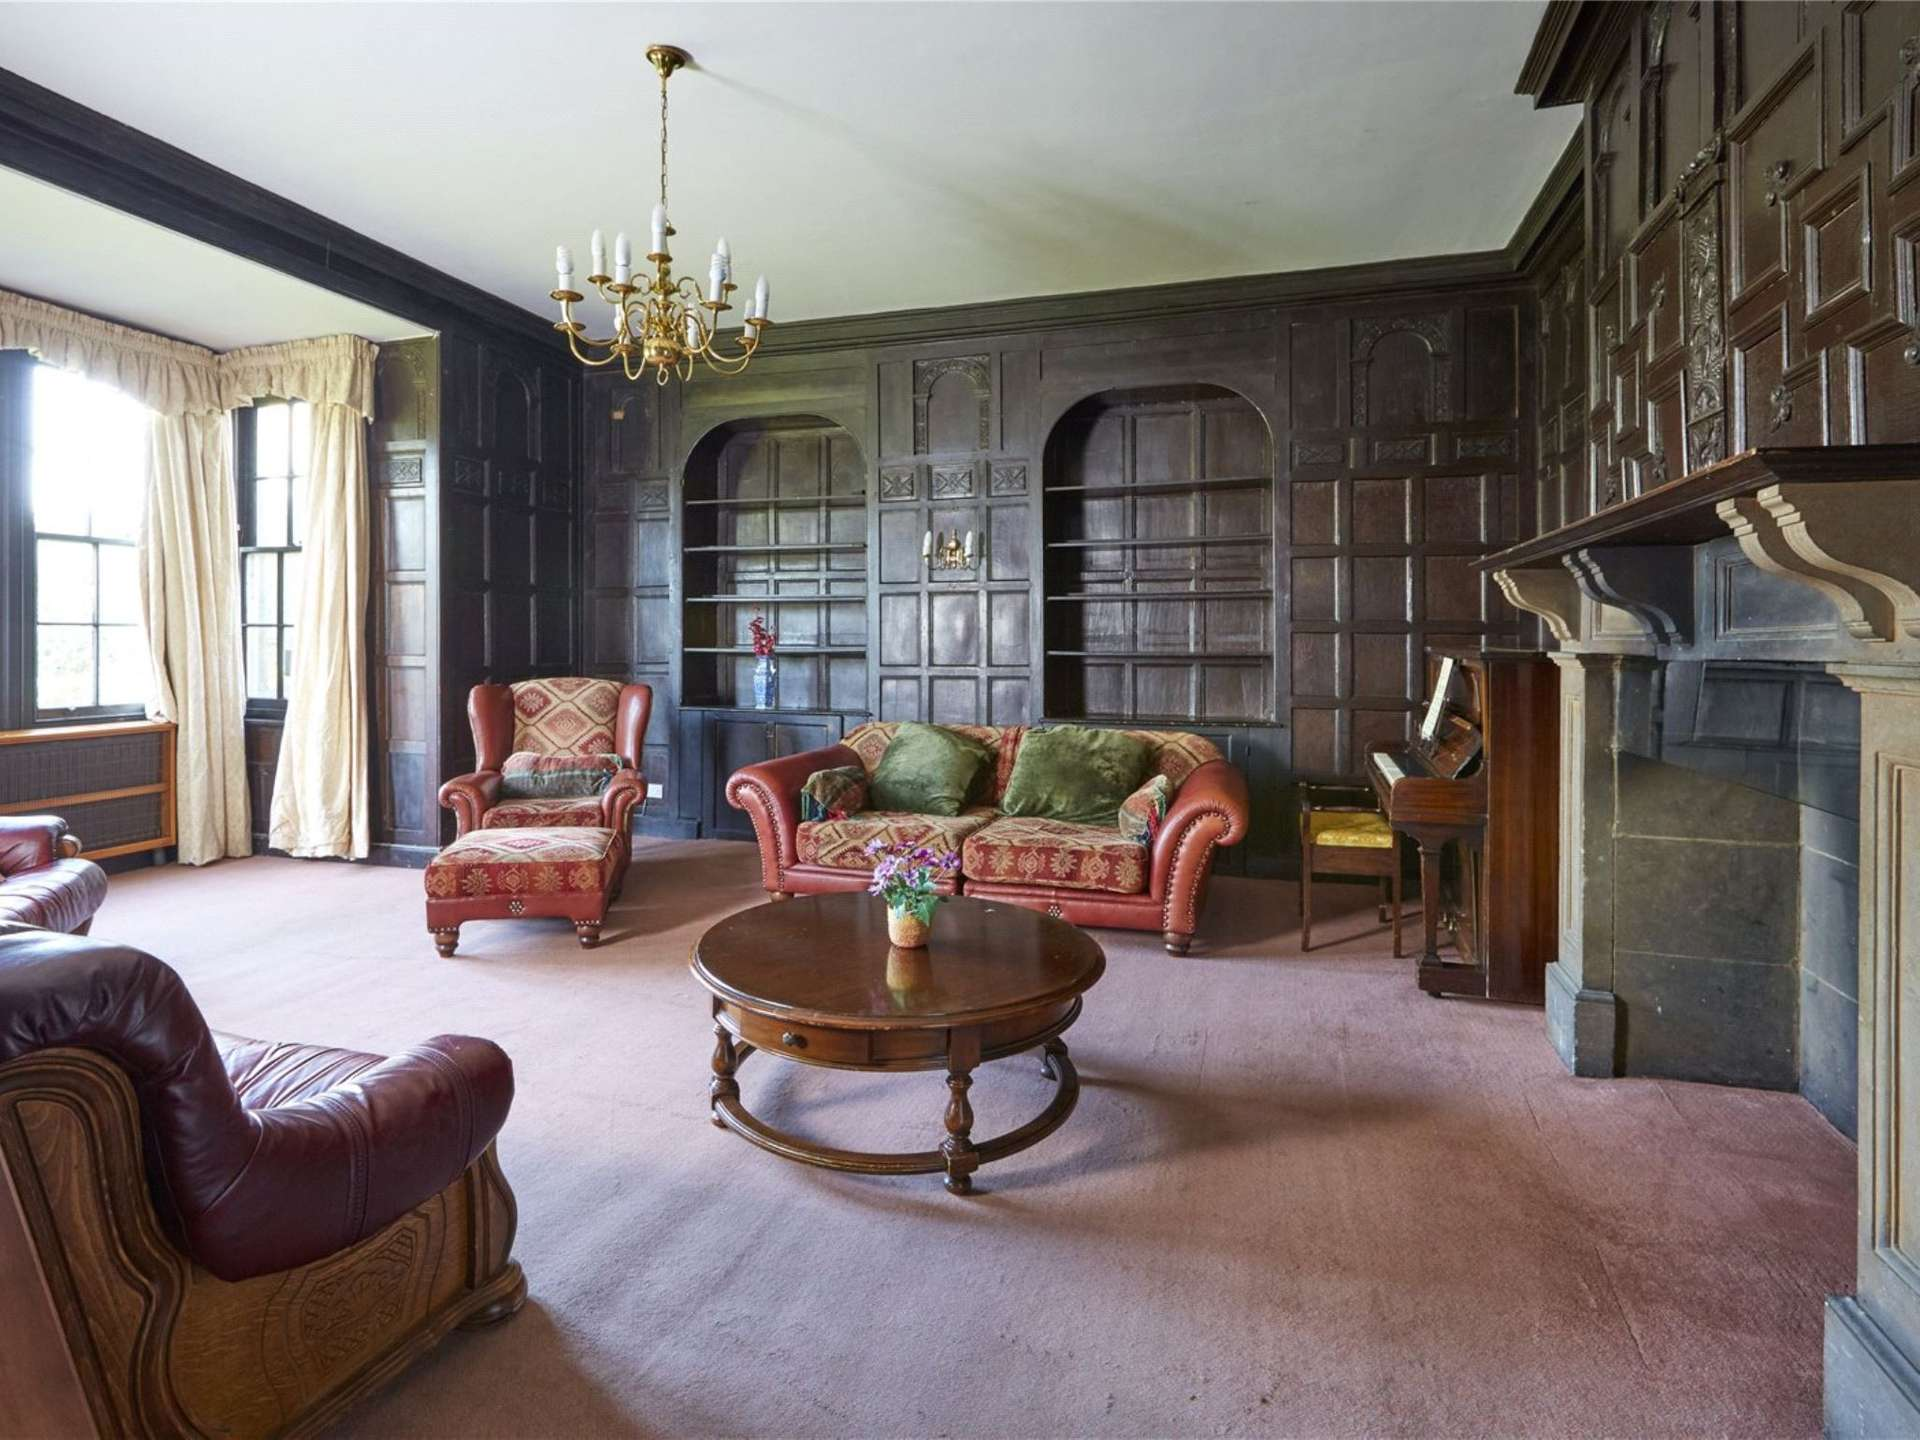 Property with potential renovation projects for sale   Country Life